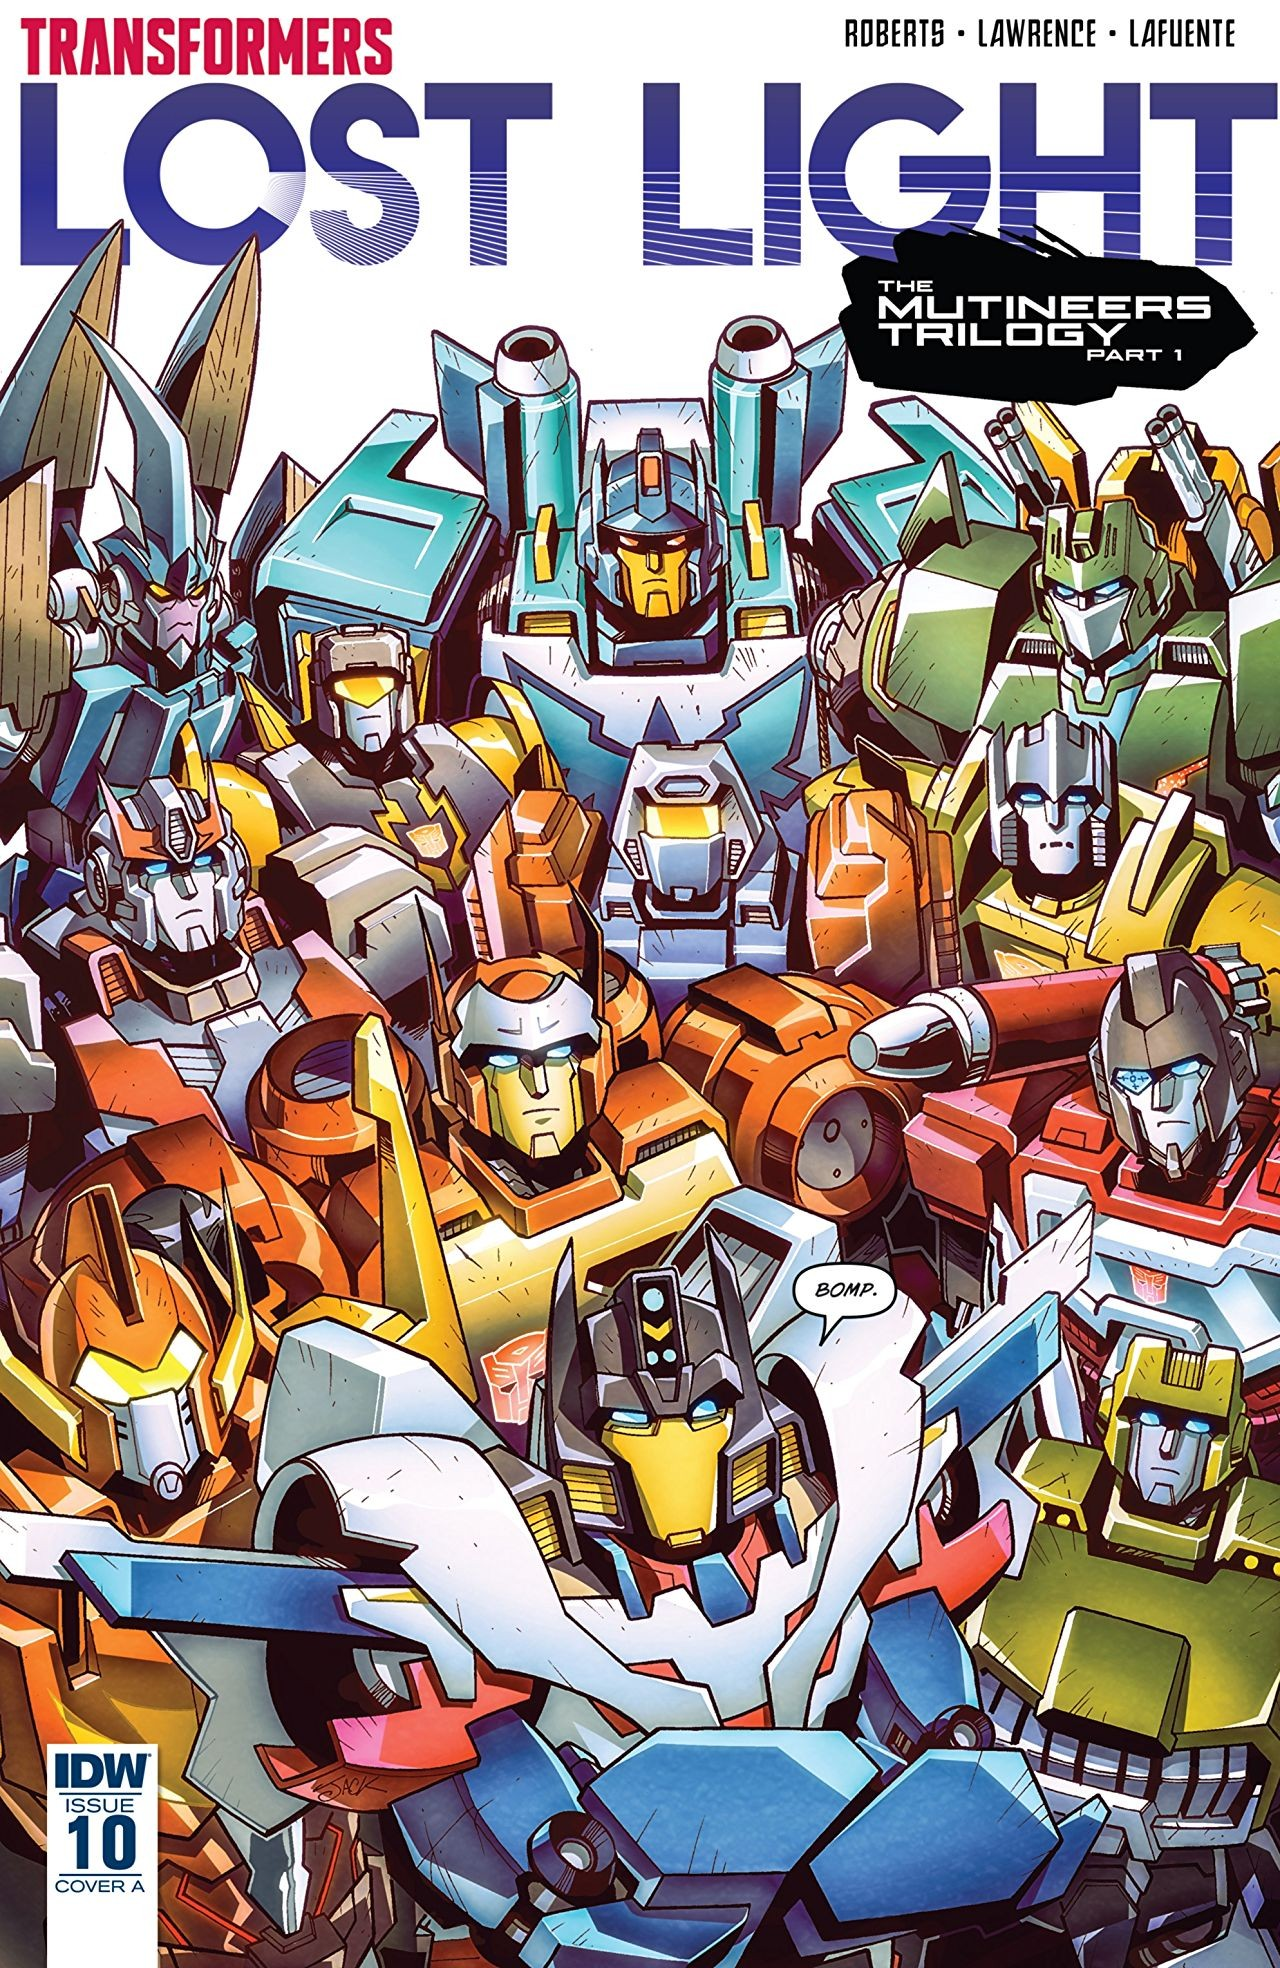 Transformers News: Top 10 Best Transformers Comic Book Covers of All Time